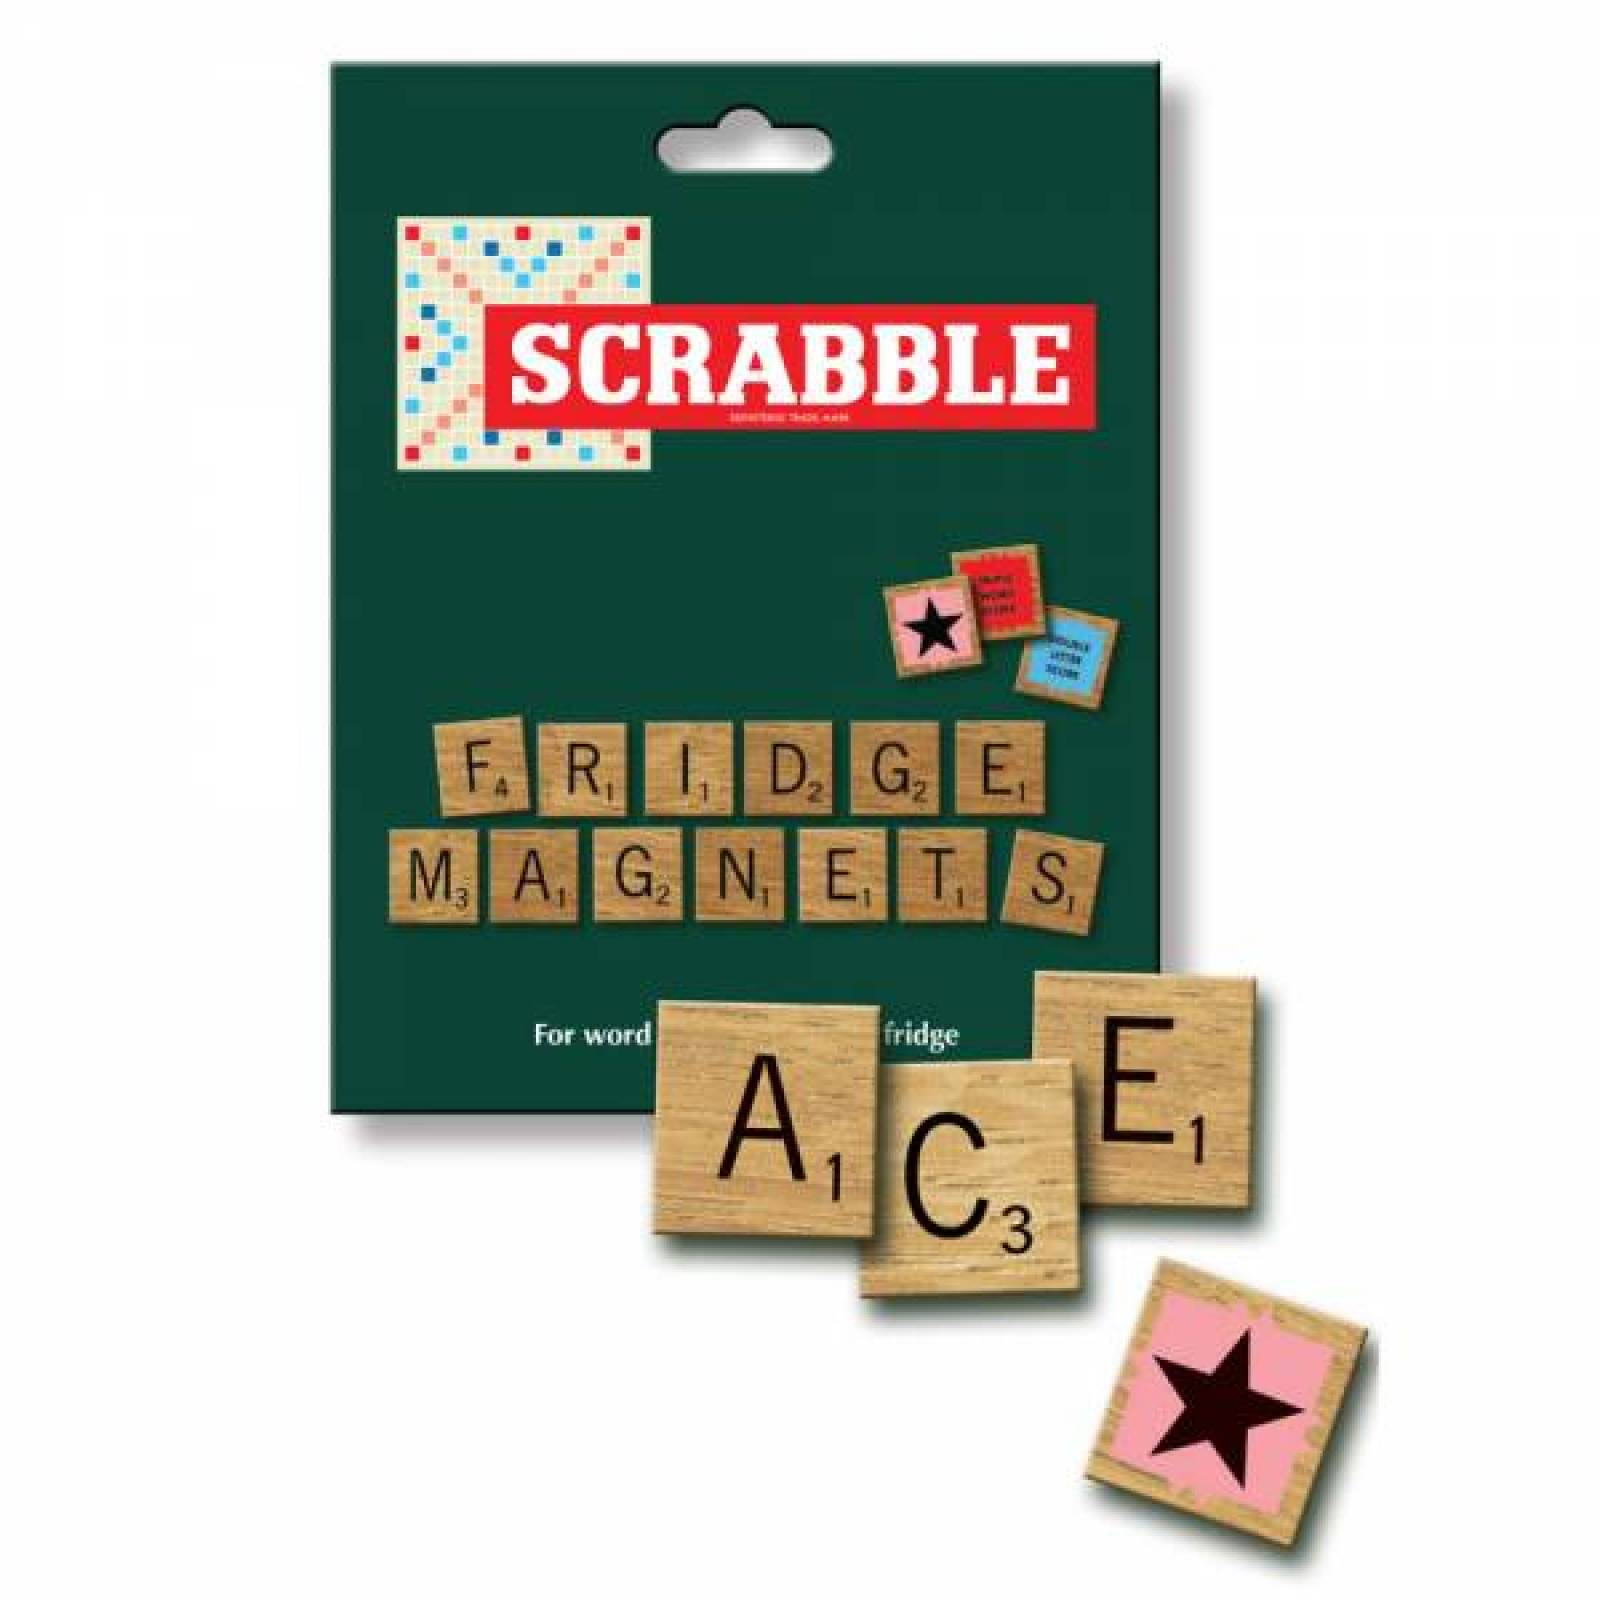 Scrabble Fridge Magnets thumbnails